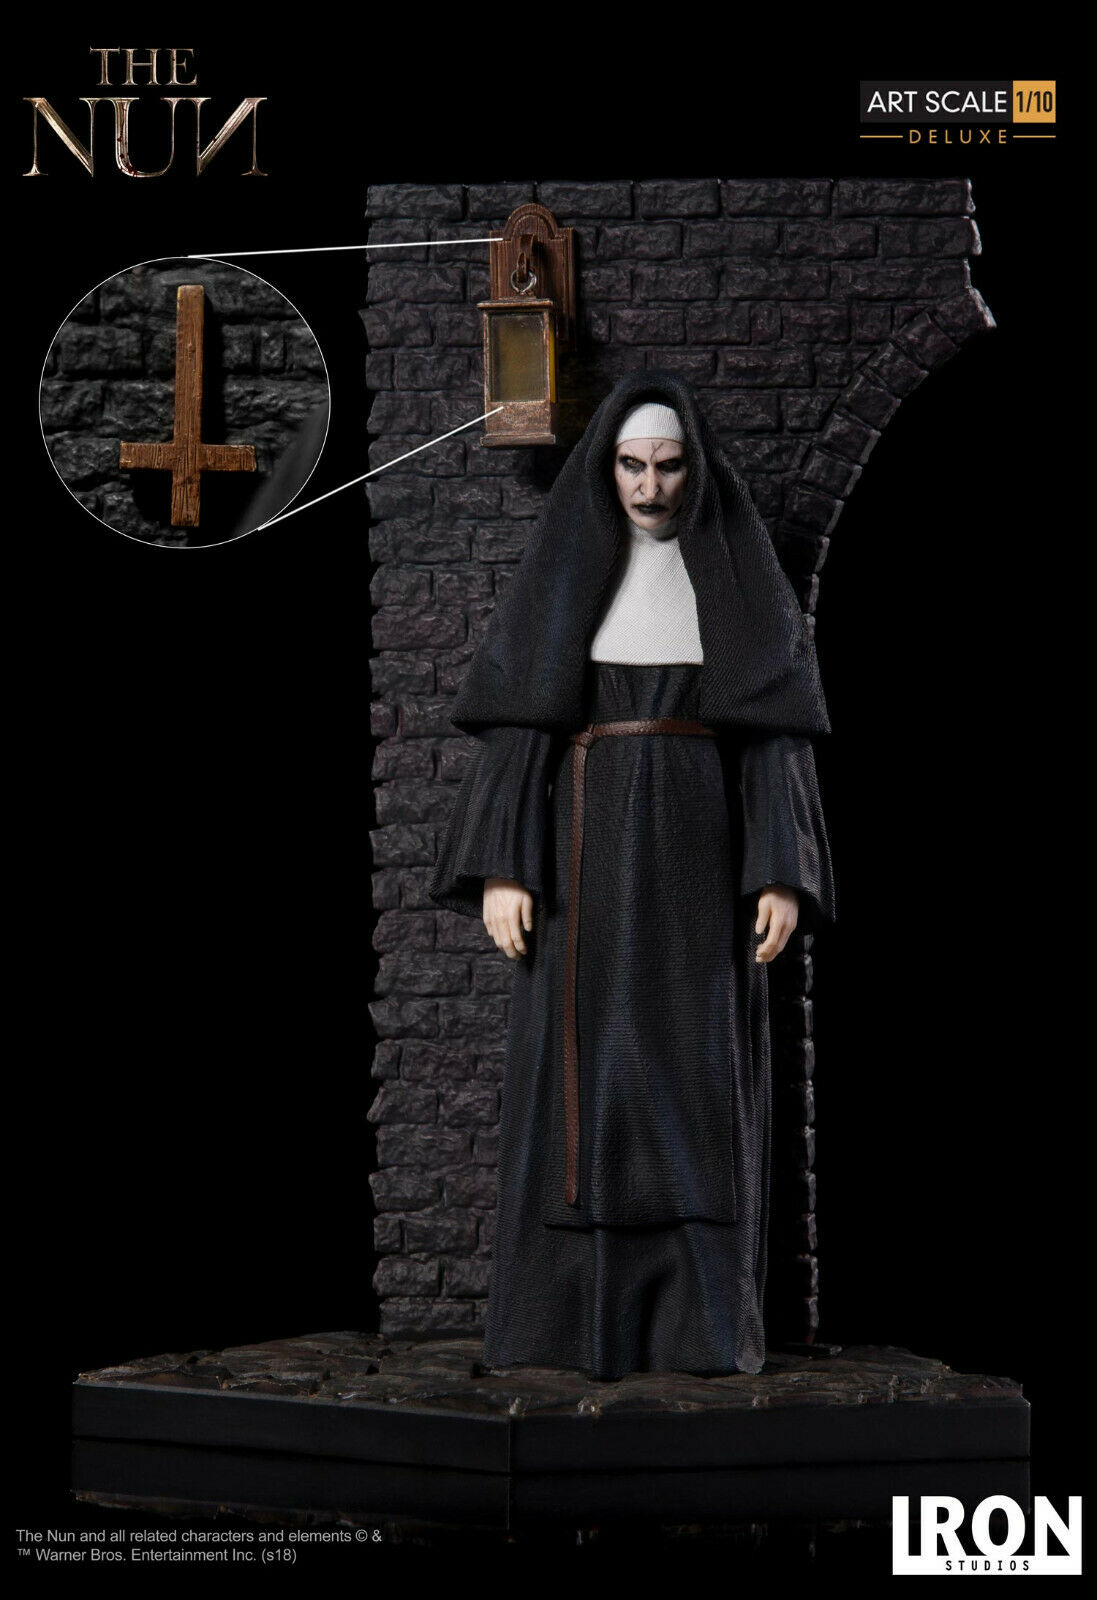 The CONJURING  the NUN DELUXE VERSION ART SCALE 1 10 STATUE 19cm IRON STUDIOS